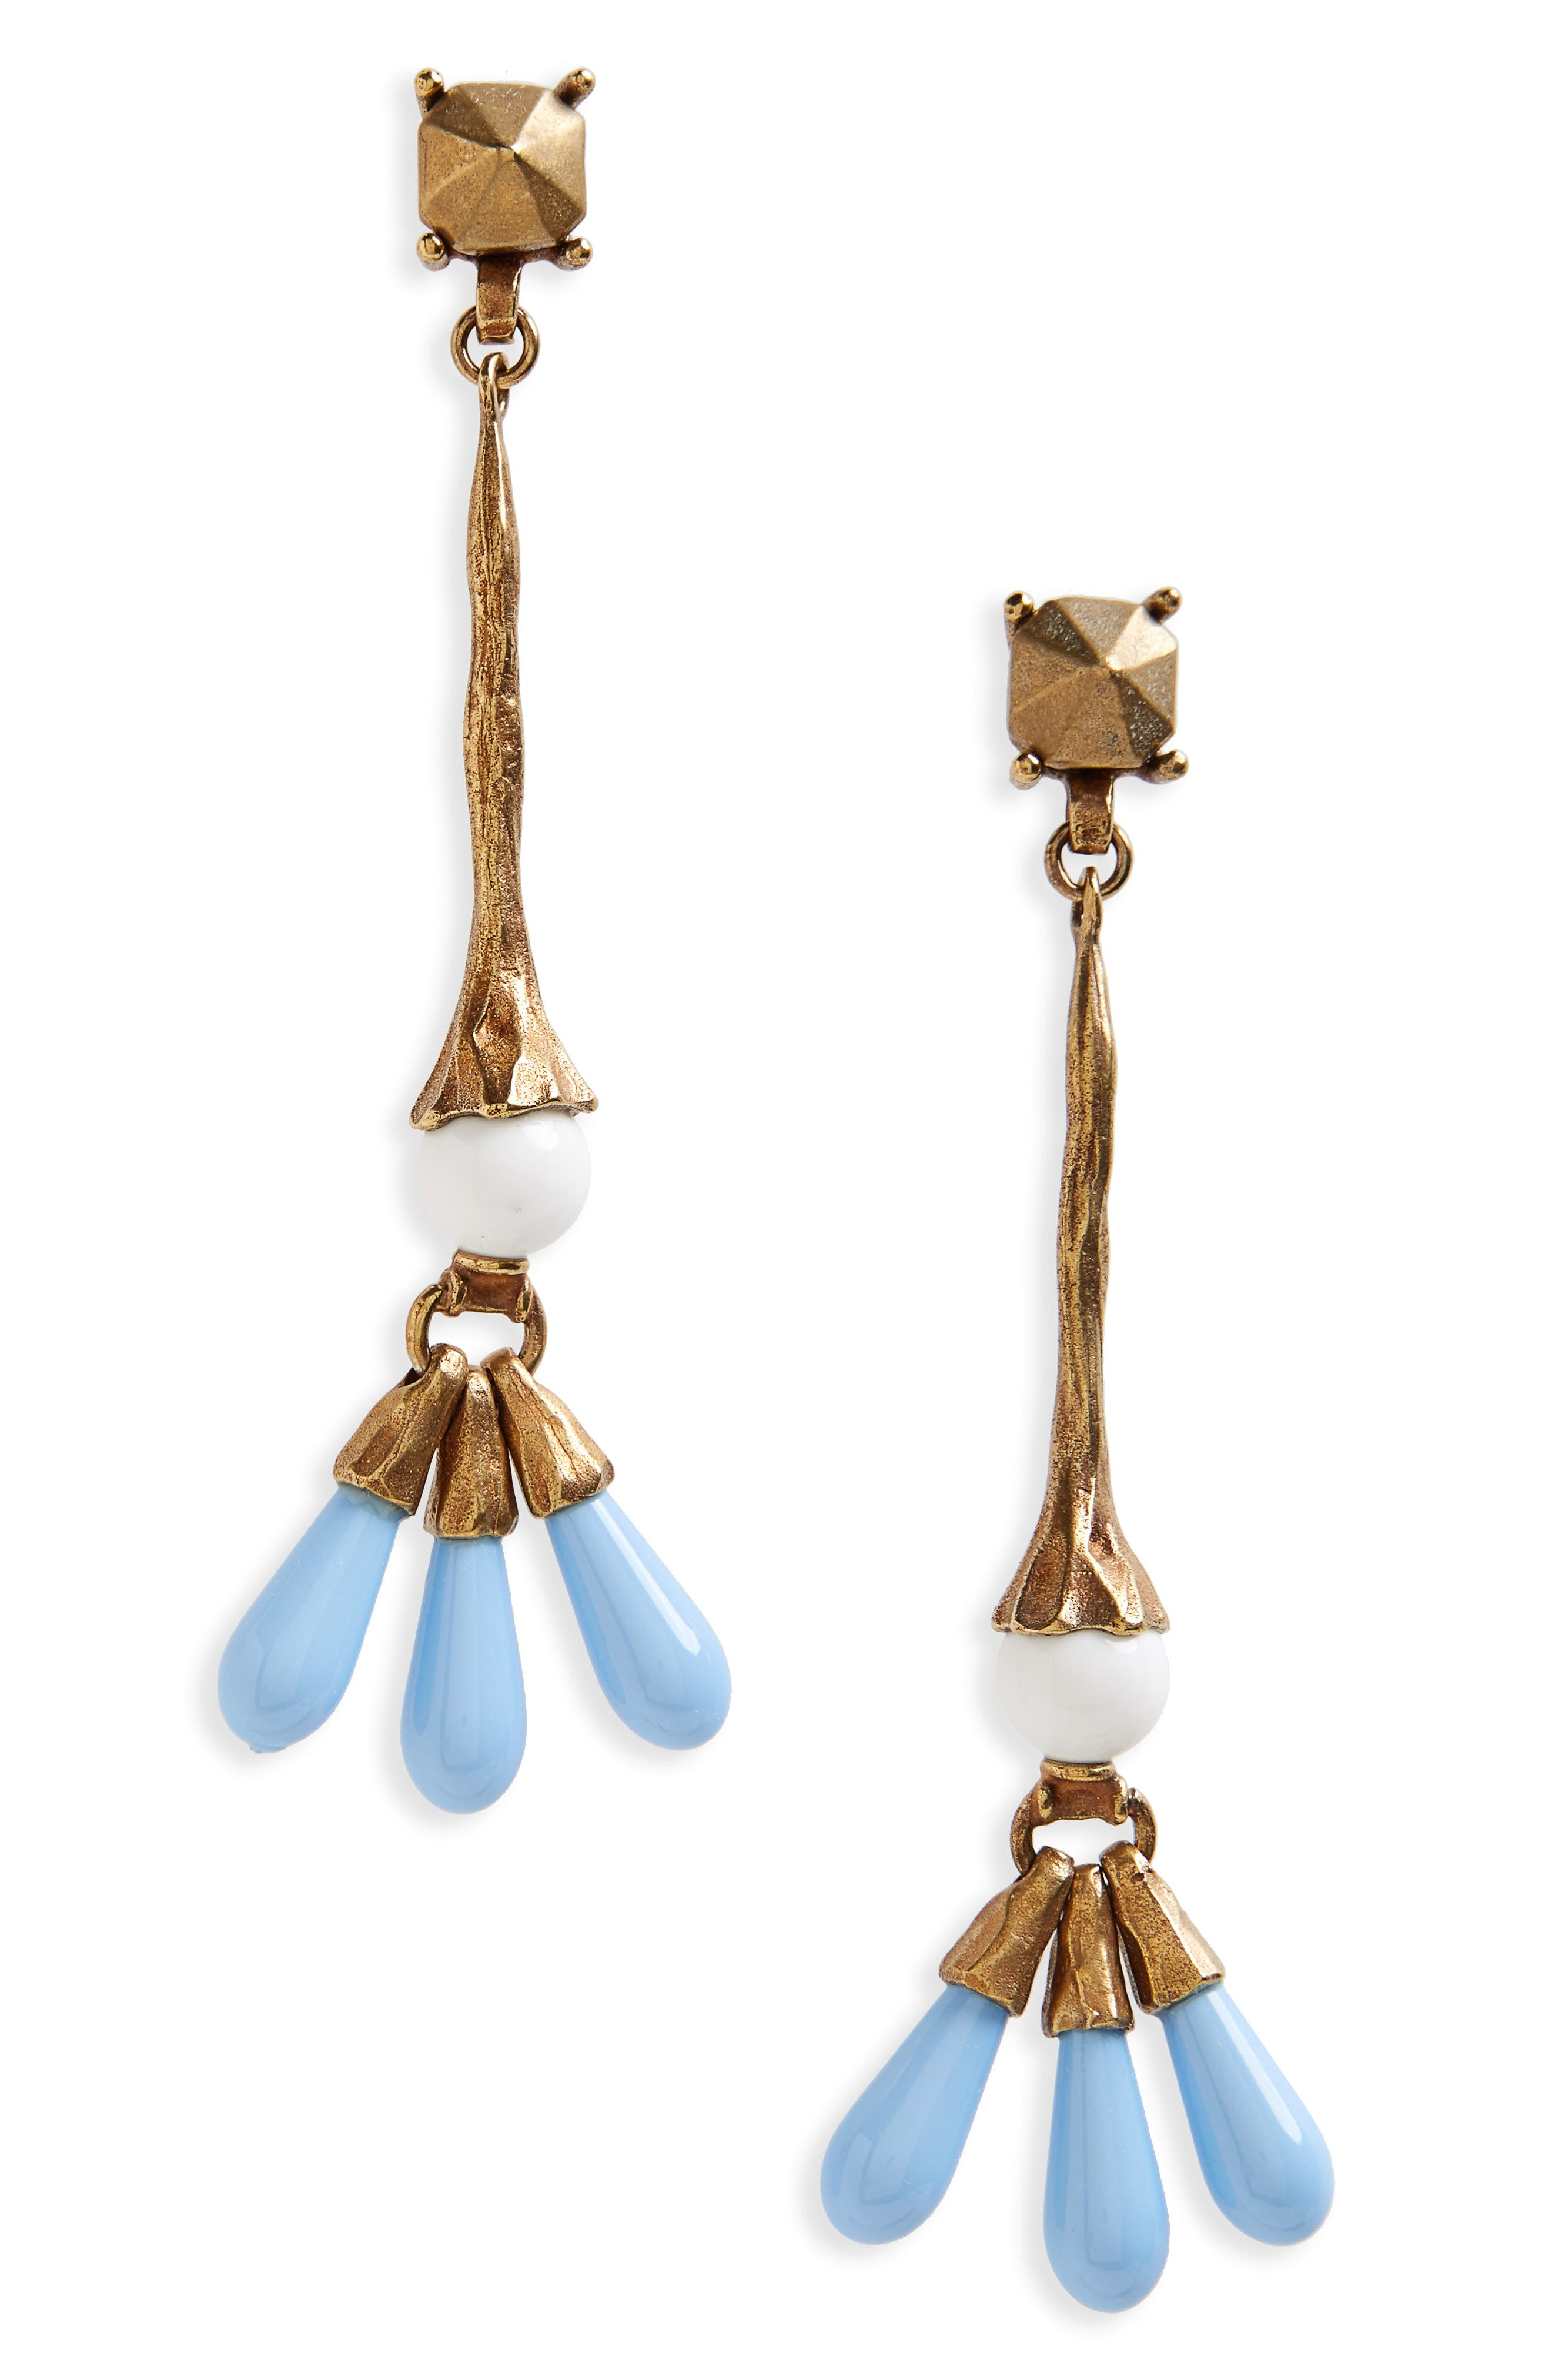 Drop Earrings,                             Main thumbnail 1, color,                             A.Gold/ Bianco/ Turchese